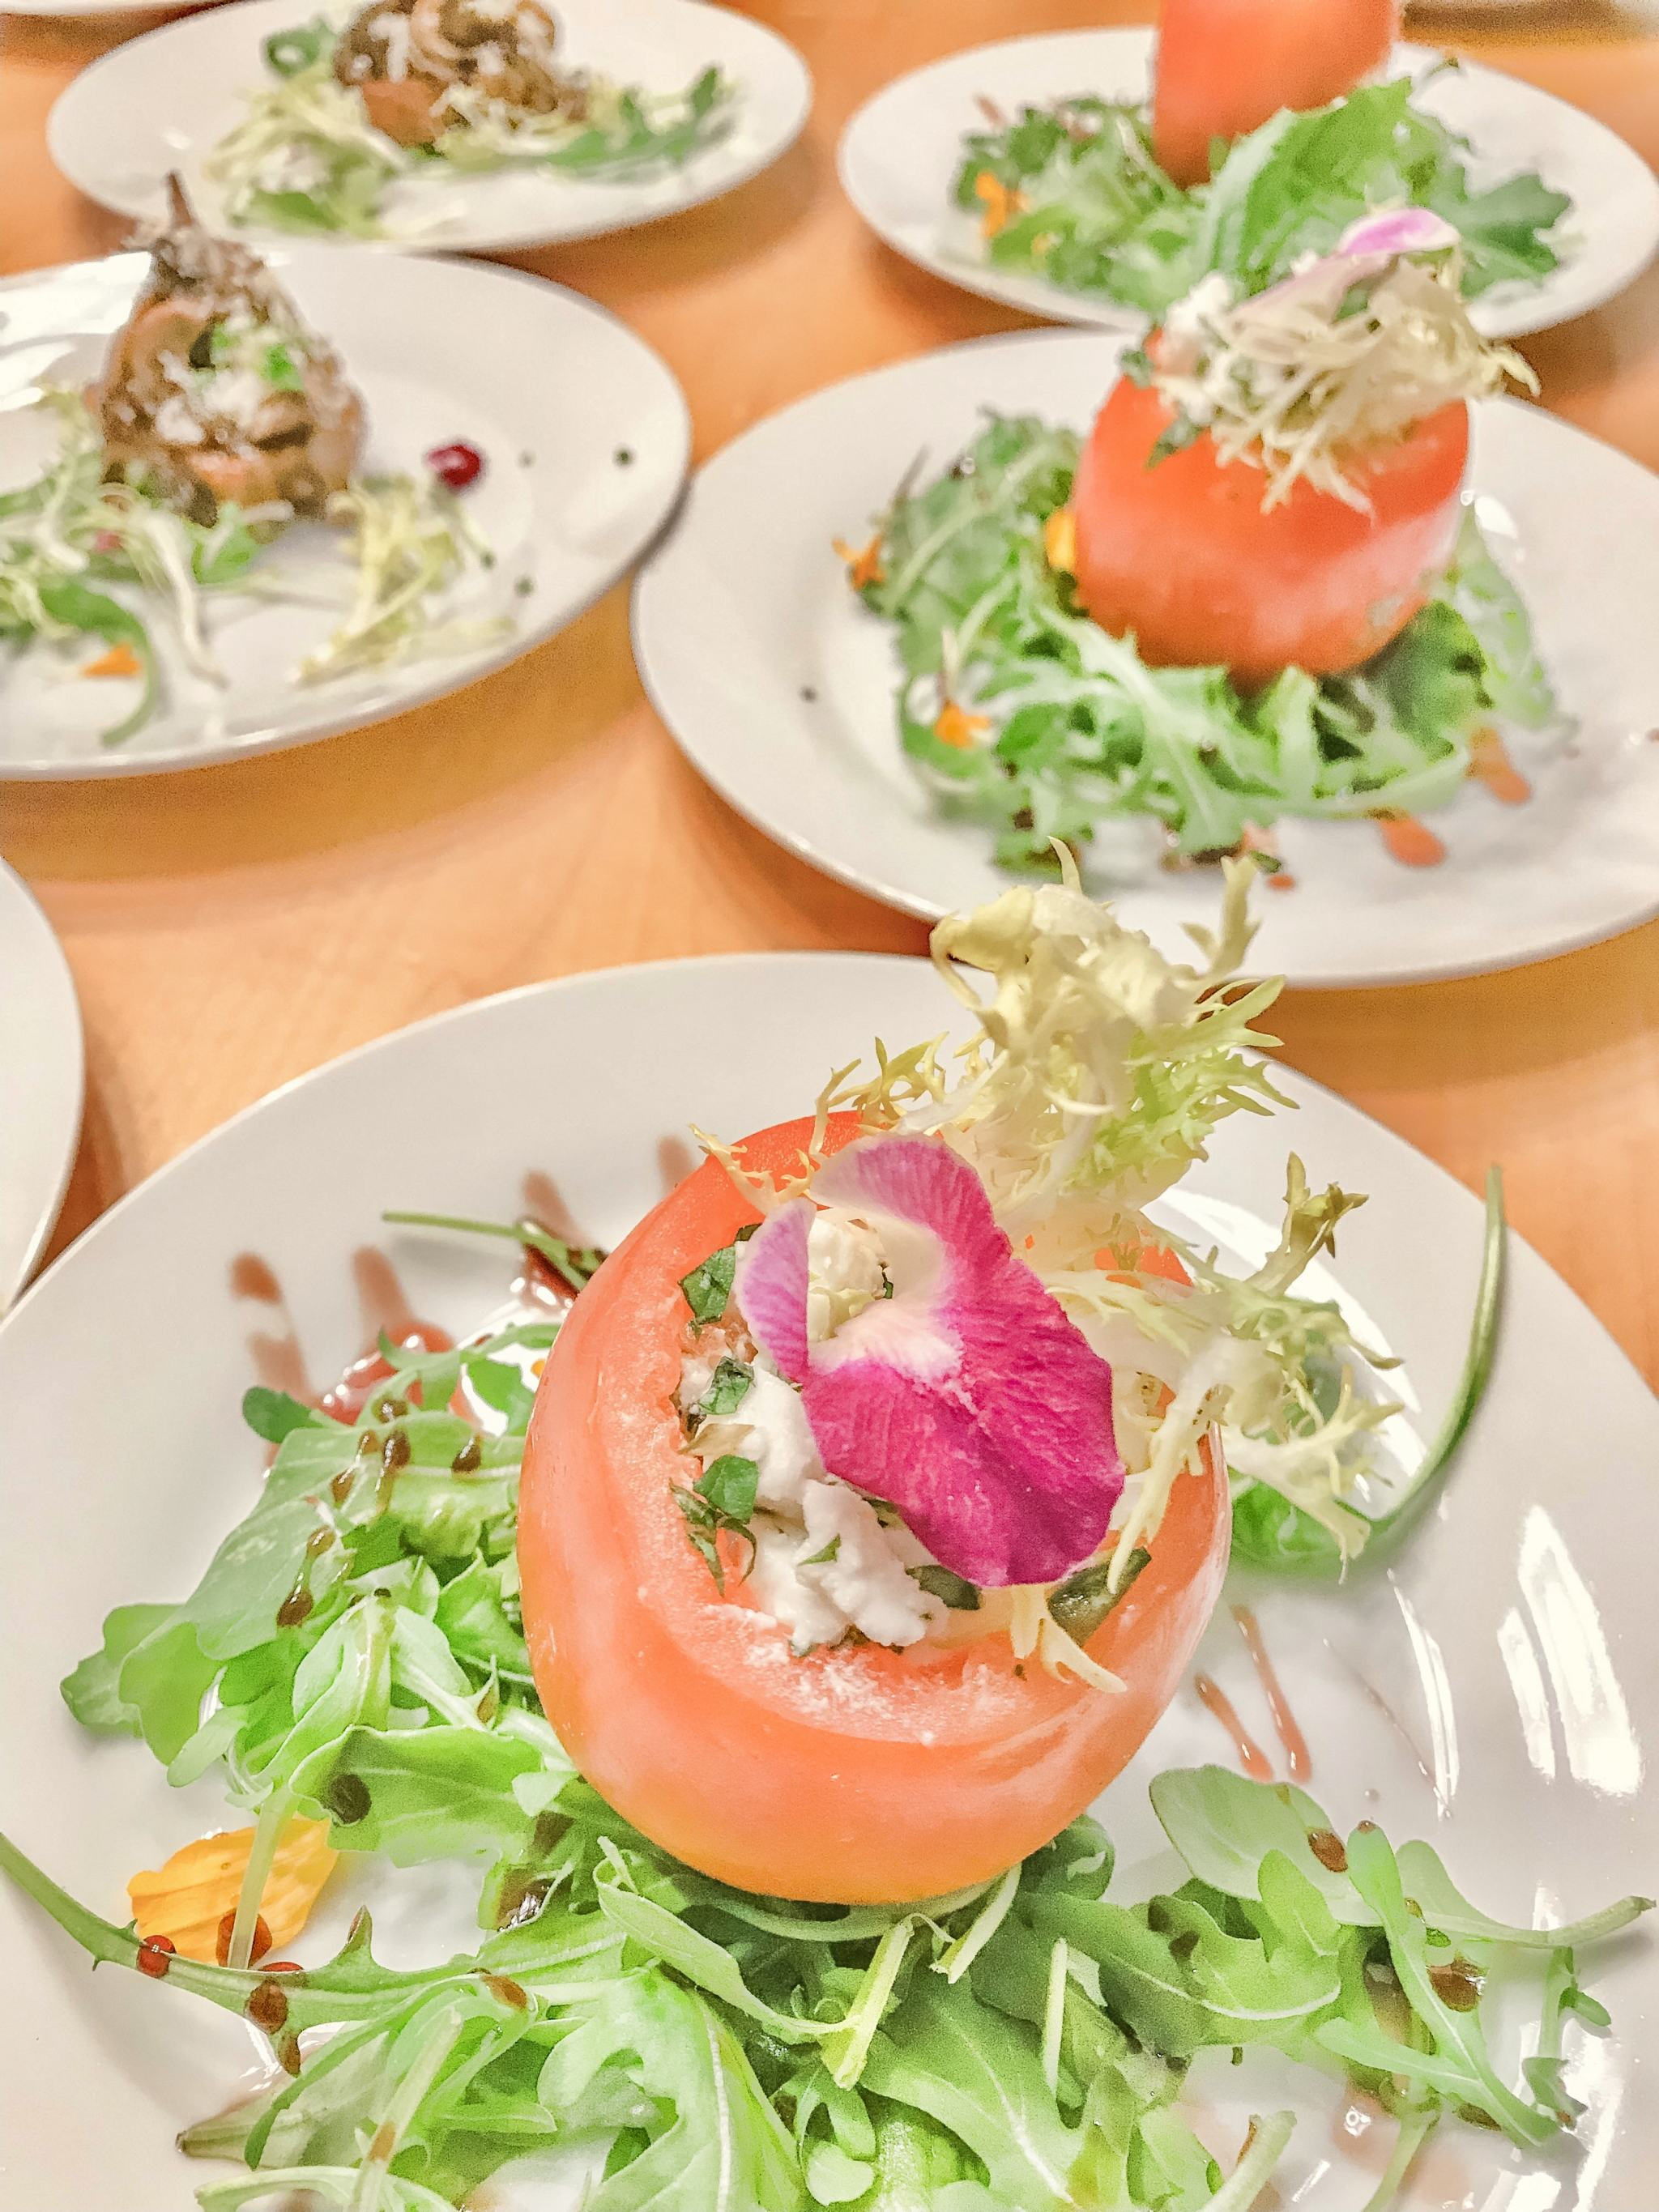 Bijuleni - Ste Anne's All Inclusive-Spa Resort - Private Chef Dinner Experience - Tomato stuffed Salad